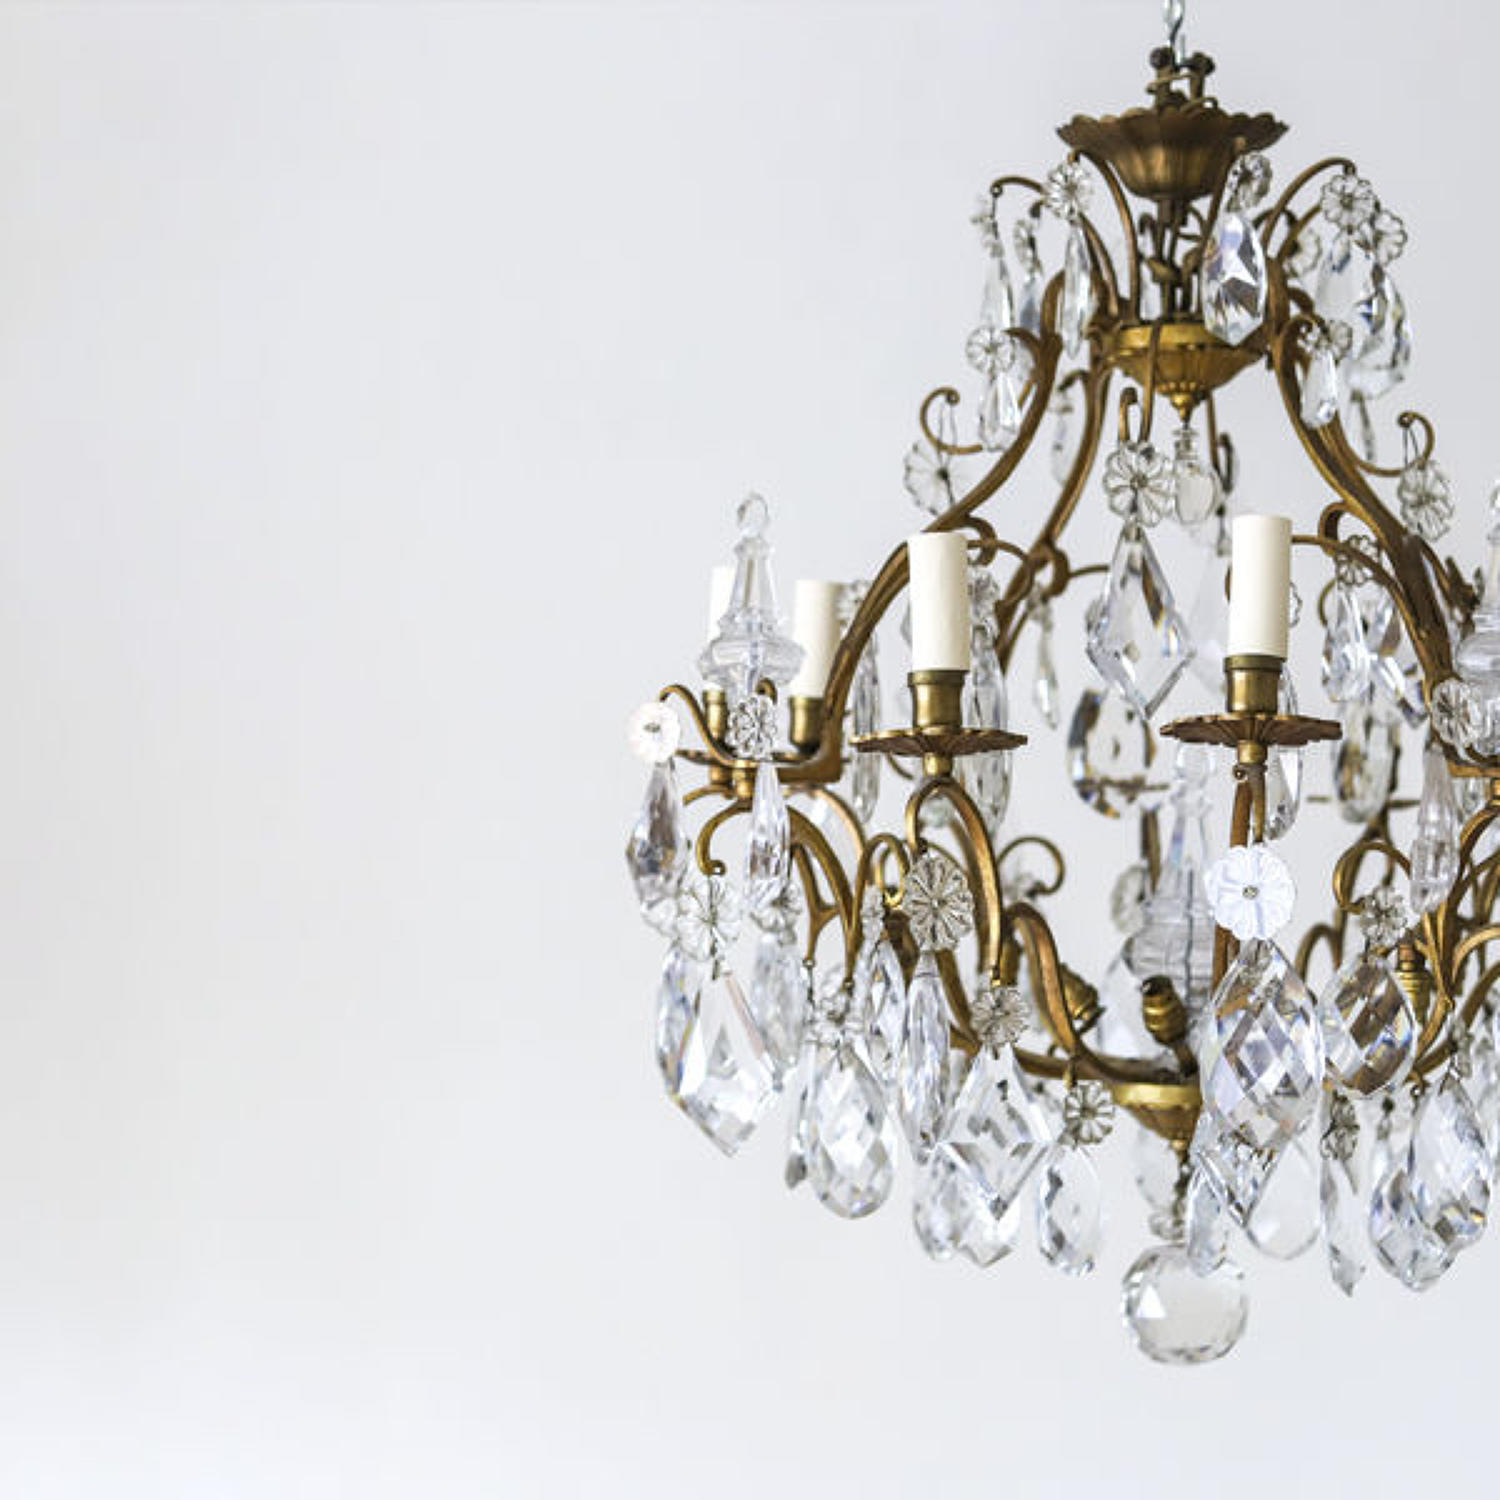 Large French antique 8 branch cage chandelier